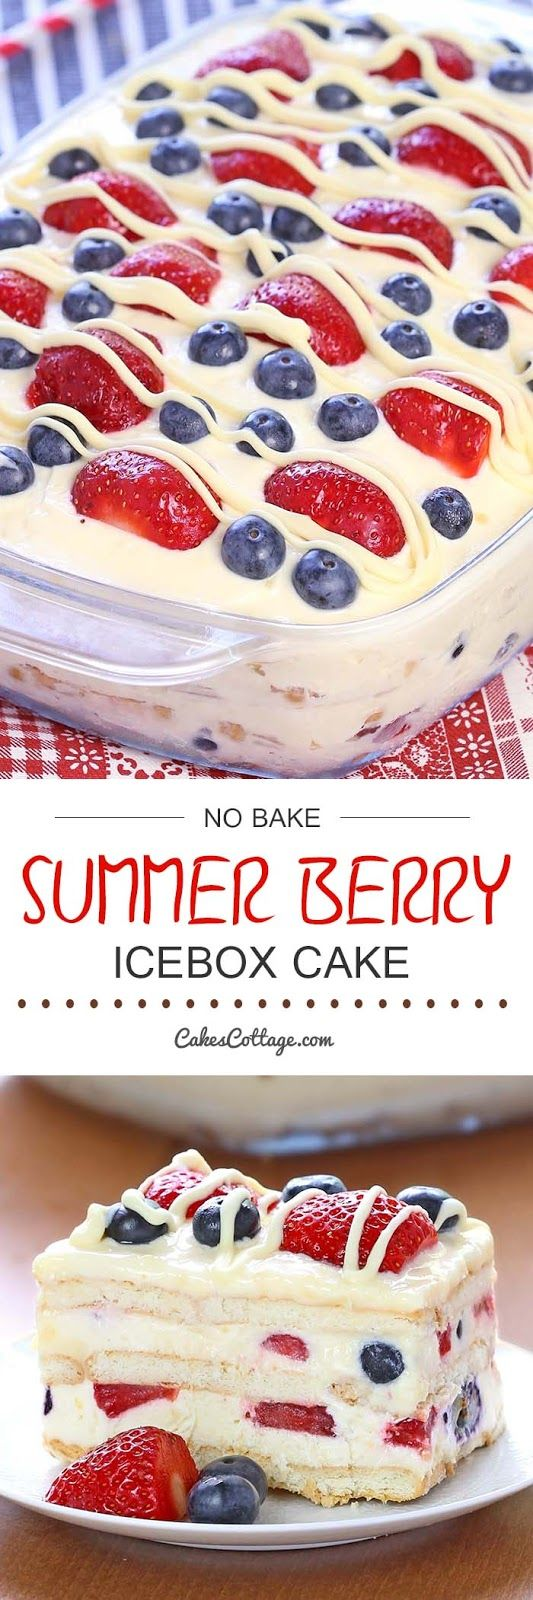 No Bake Summer Berry Icebox Cake | Mom's Food Recipe